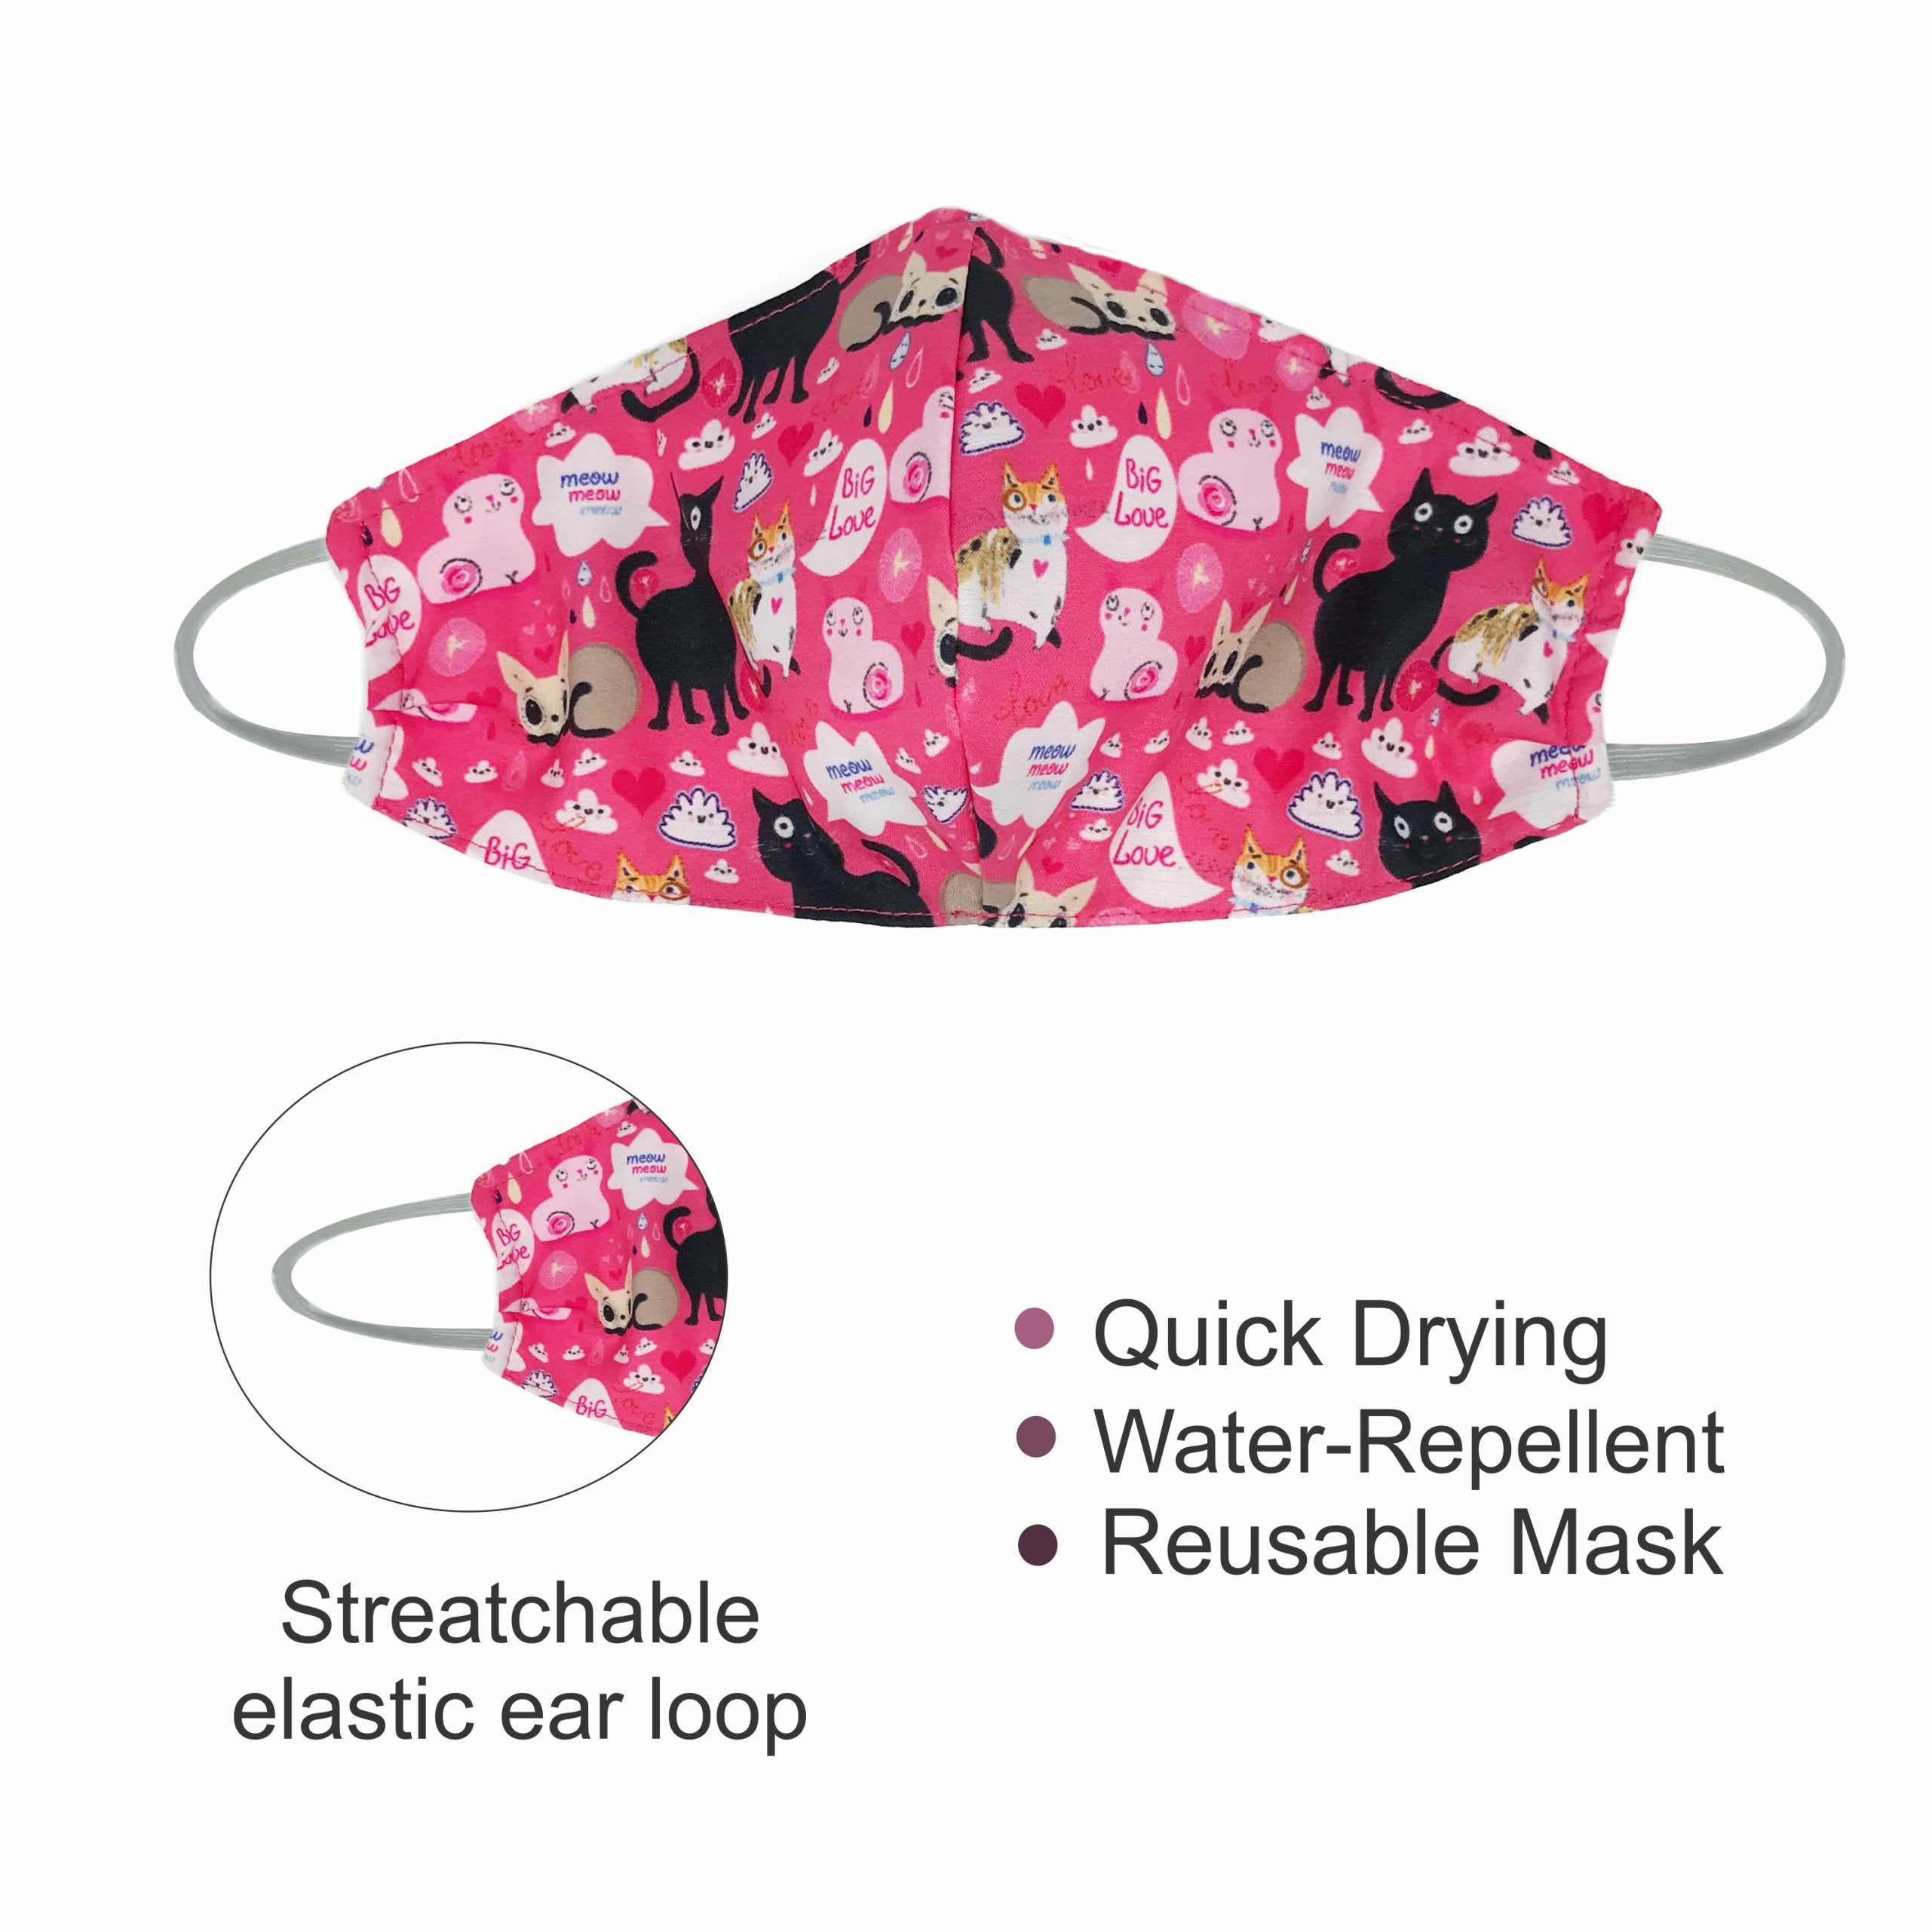 Reusable Mask - Polyester Blend (Water-Repellent) cat lovers